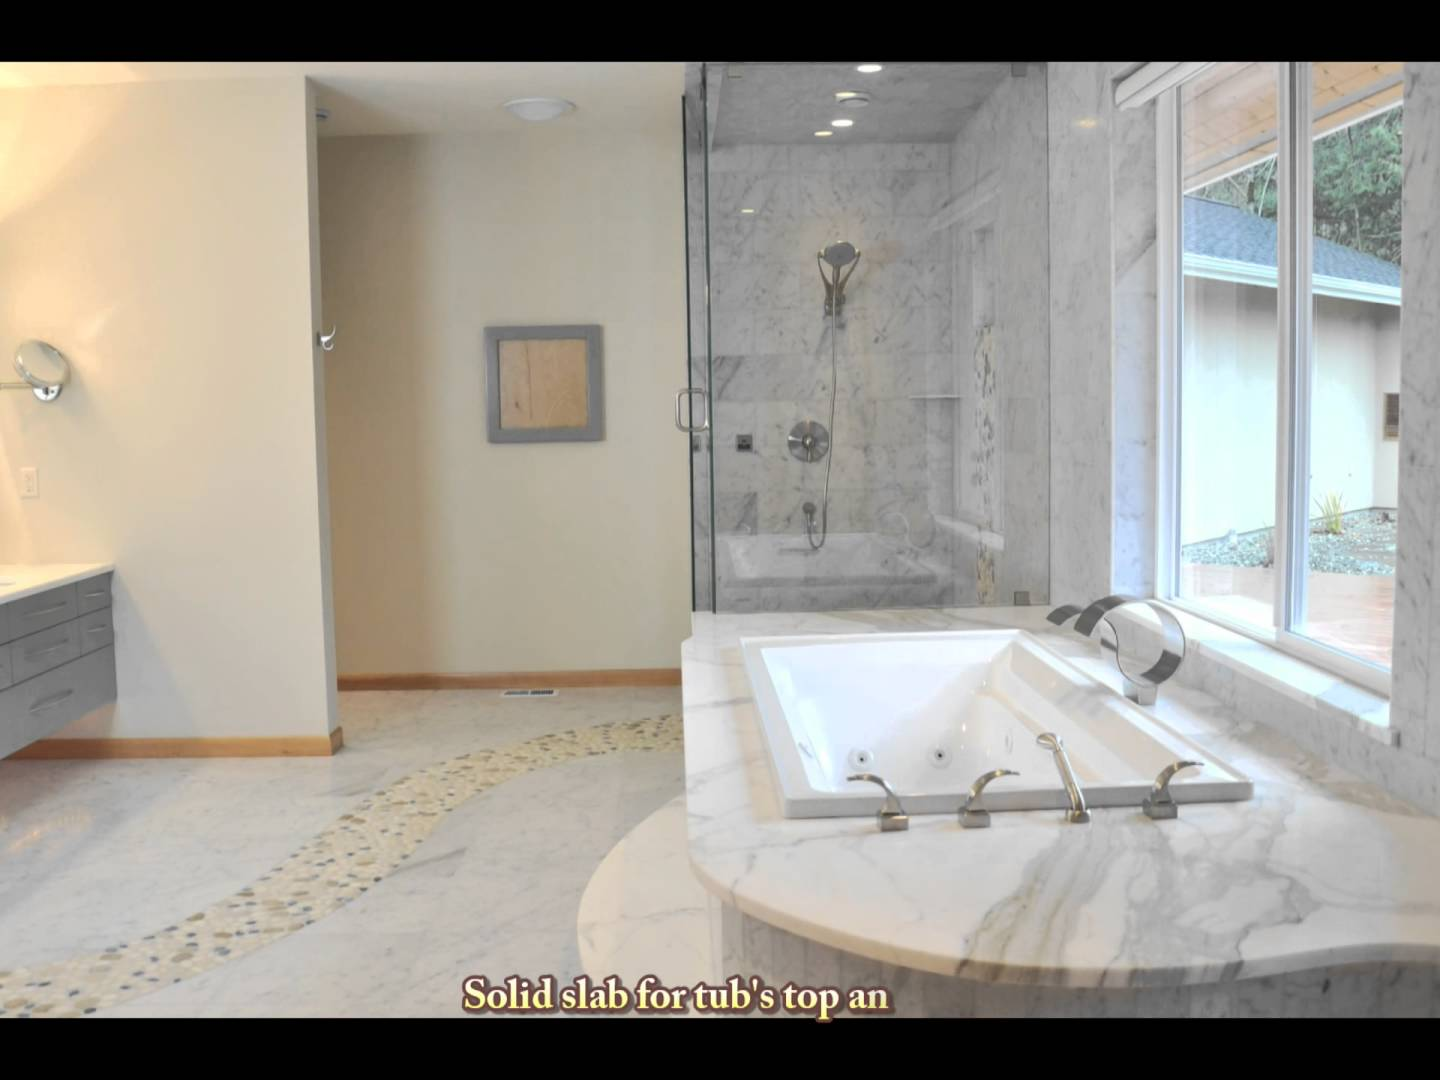 bathroom-fabulous-and-spaciout-bathroom-design-ideas-with-pebbles-steps-to-the-glass-stall-shower-area-fancy-pebble-tile-bathroom-ideas